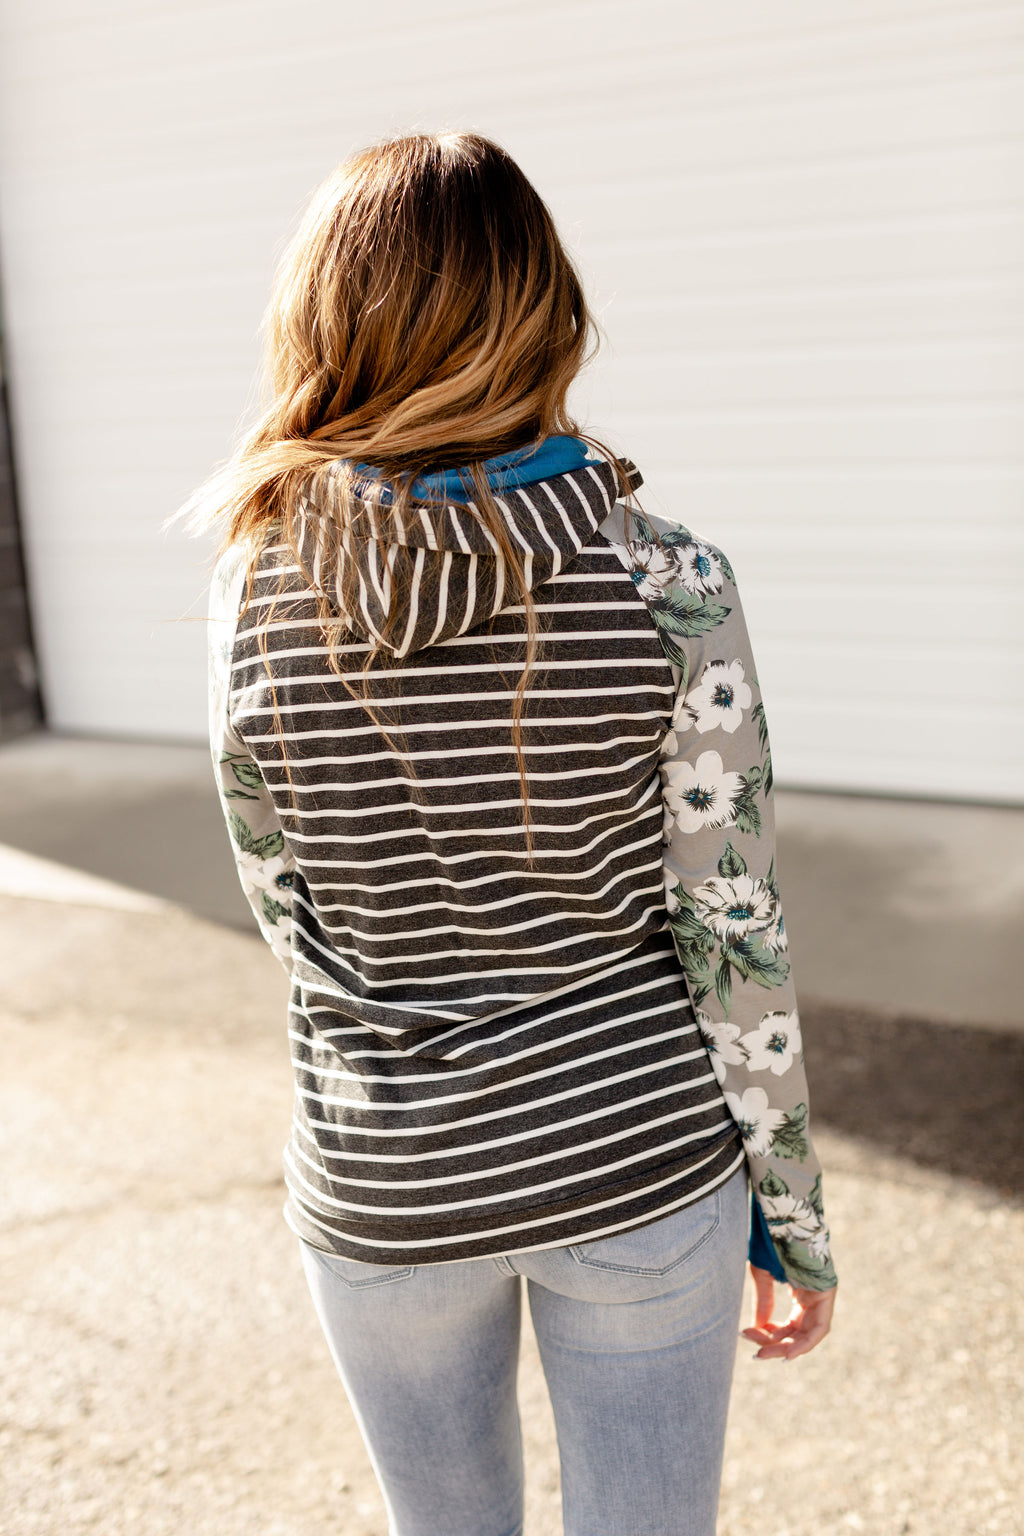 Ampersand Ave Give and Take DoubleHood Sweatshirt in Floral and Stripes